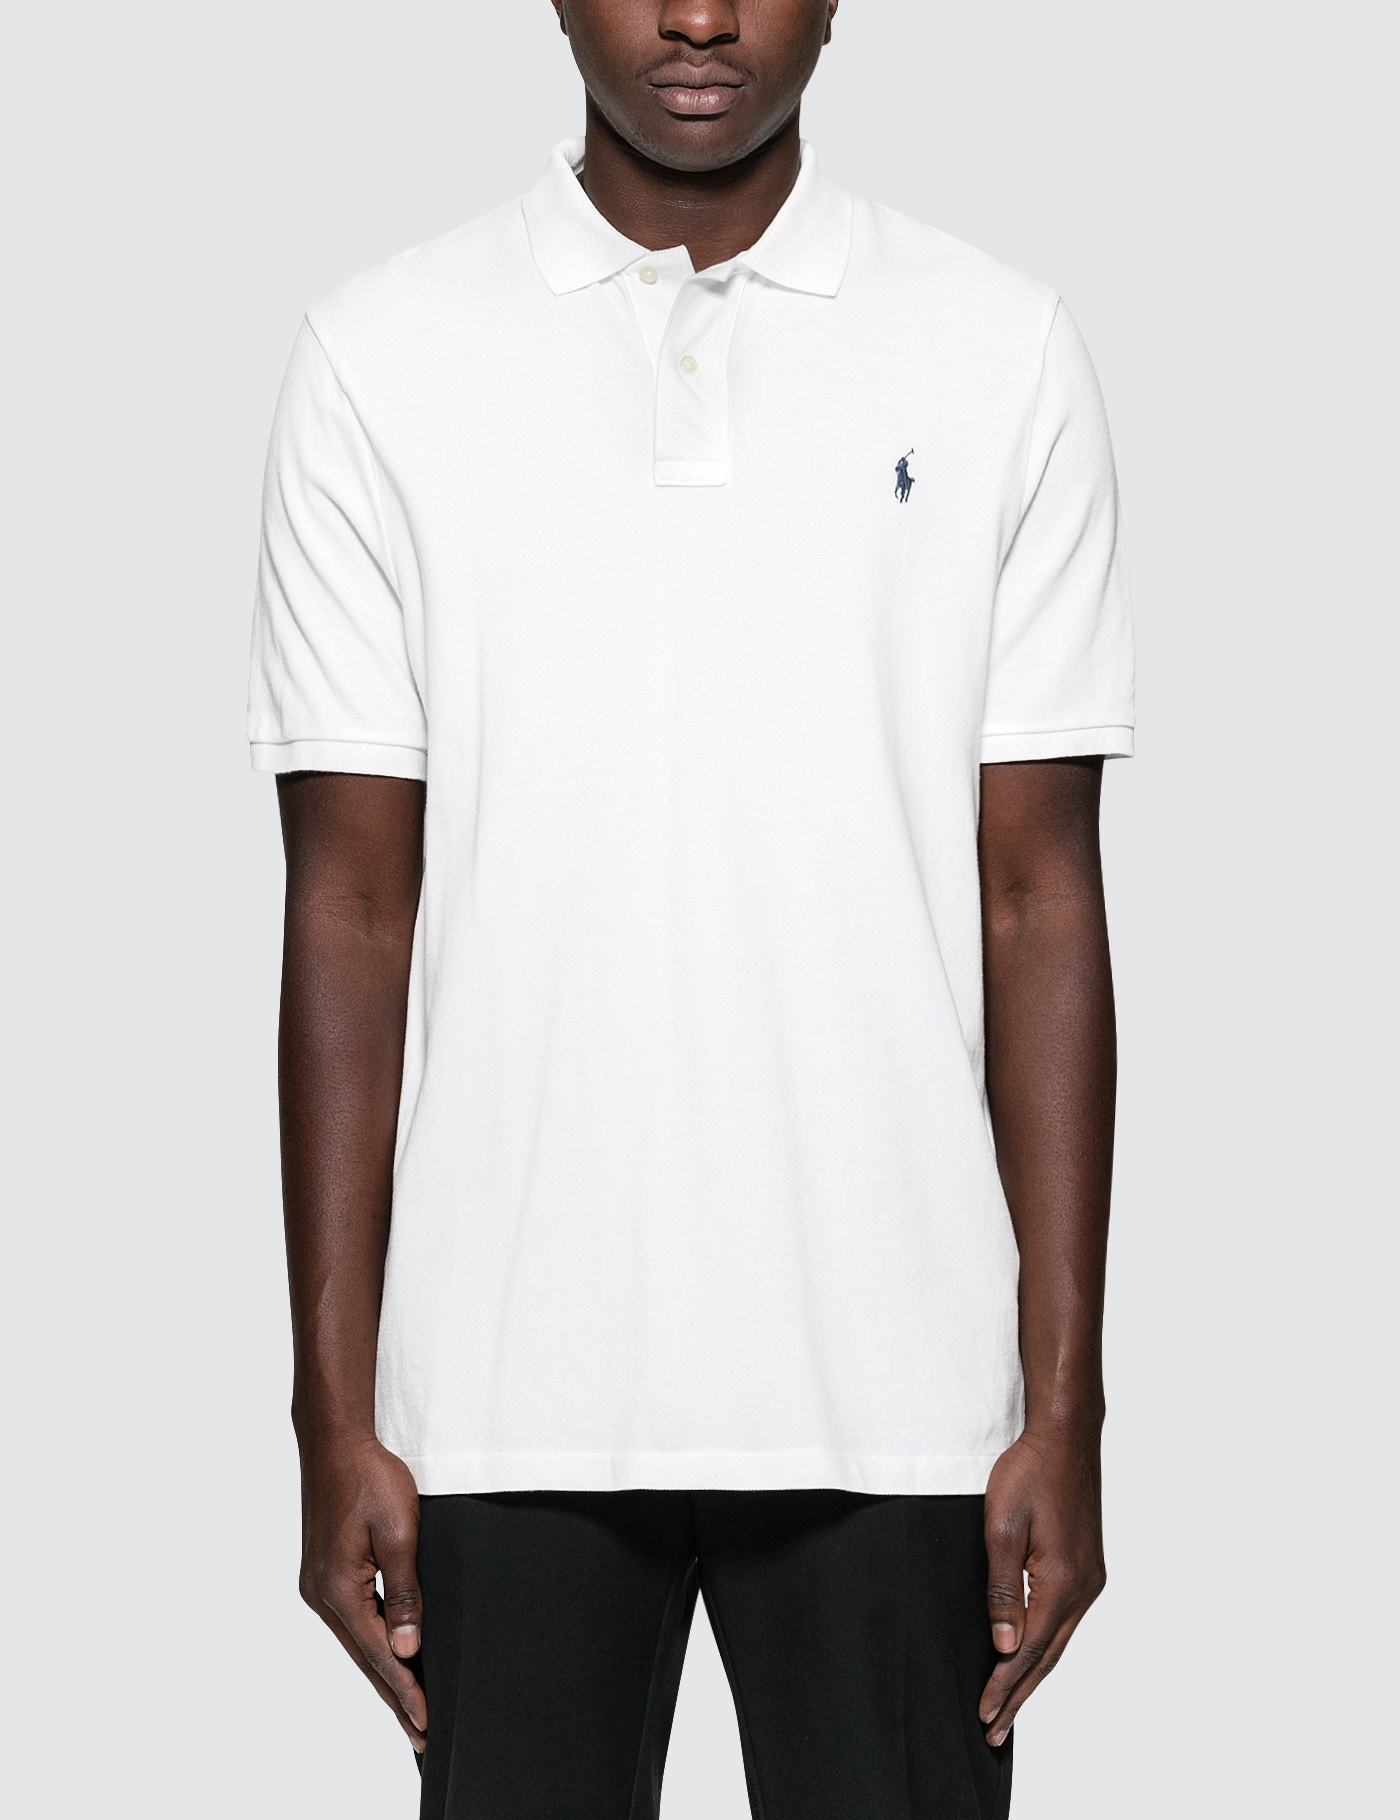 Jual Polo Ralph Lauren Classic Fit S S Polo - 100% Original  4089ab7785